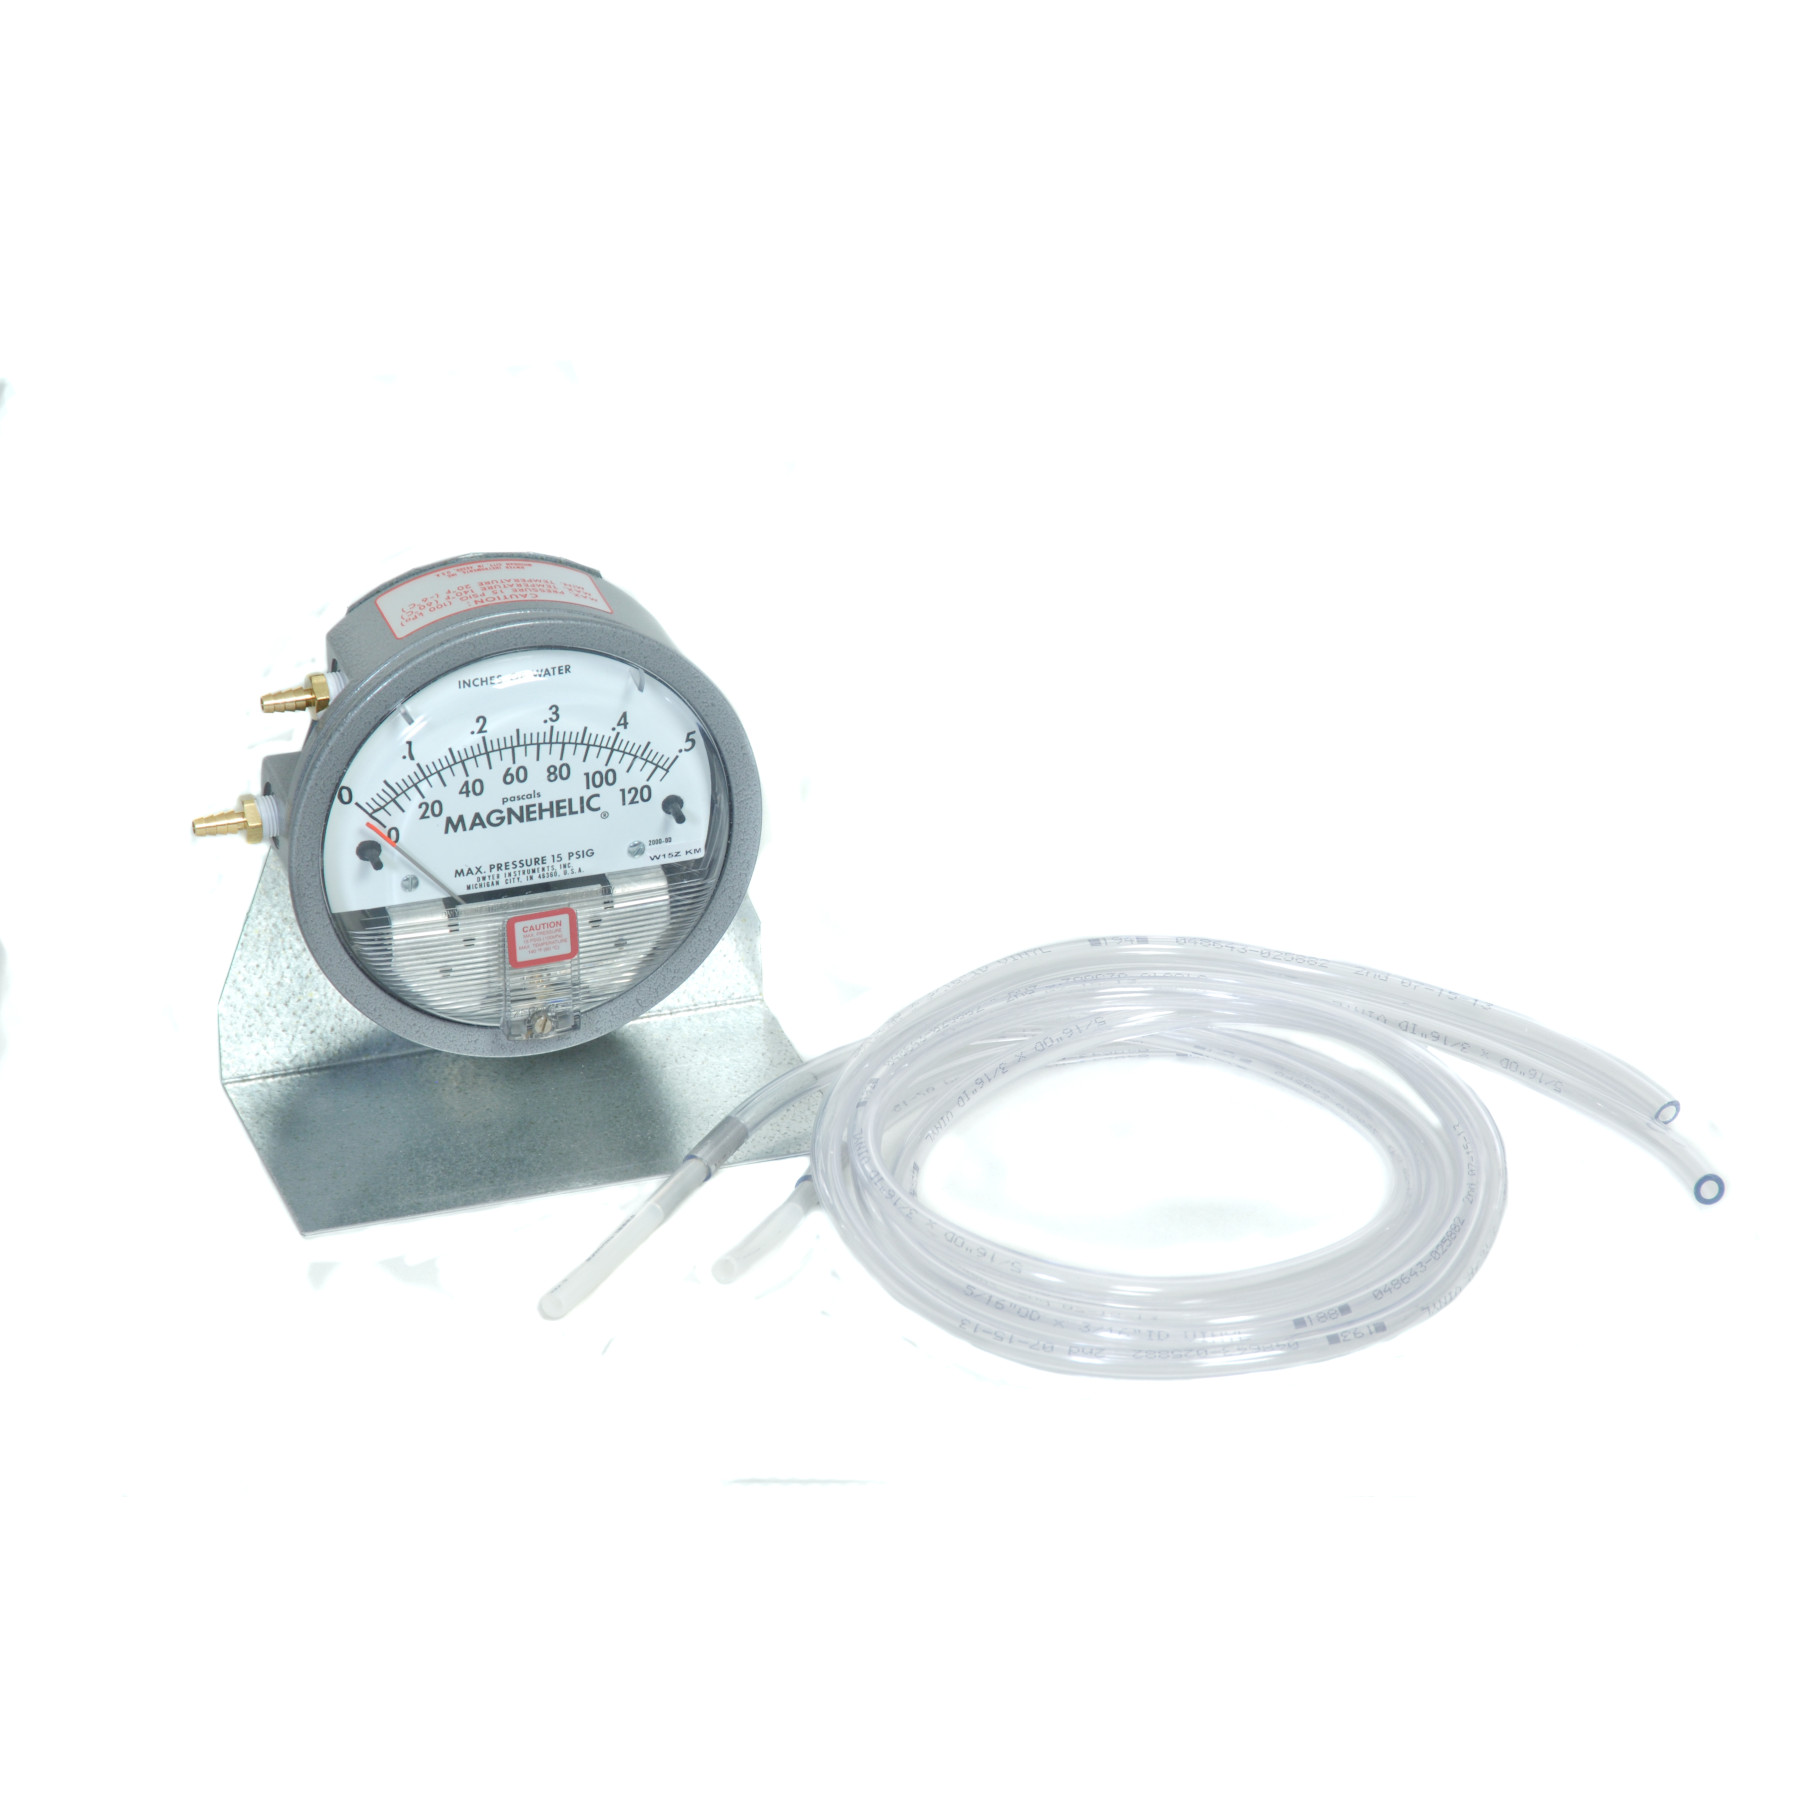 PRESSURE GAUGE .5-Inch OF WATER